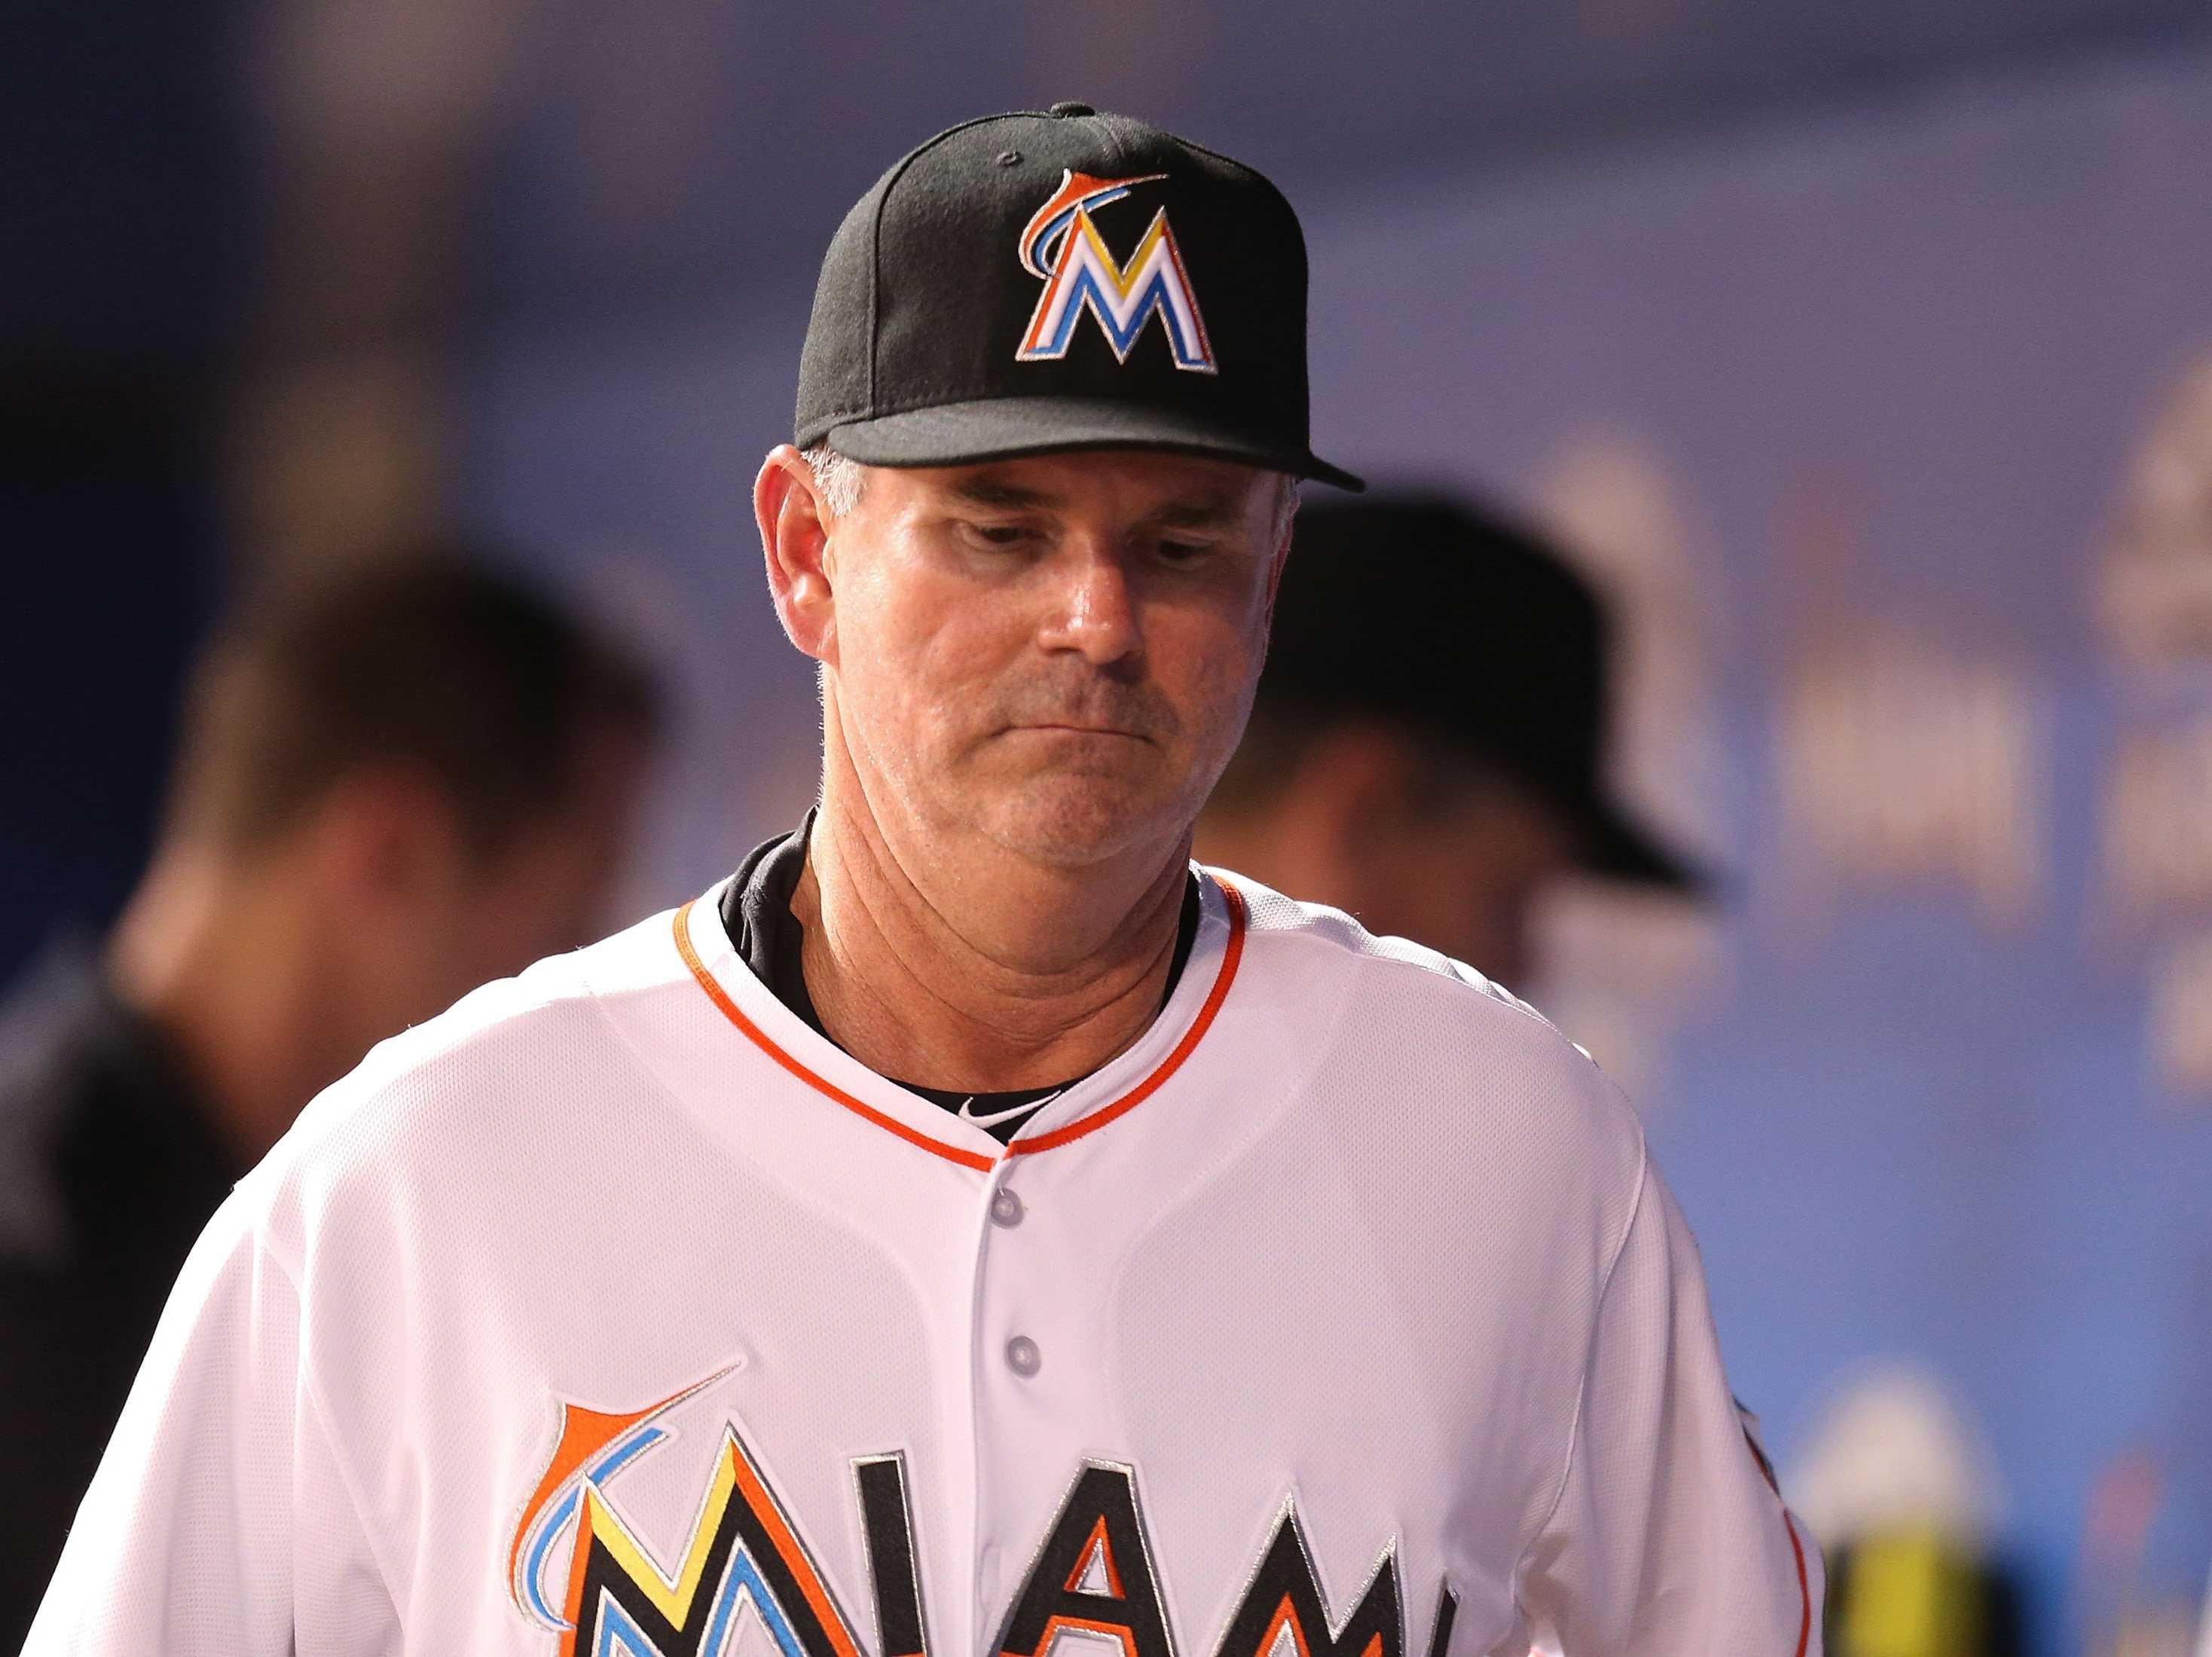 The Marlins' bizarre manager experiment has been a disaster so far, and other MLB managers are loving it